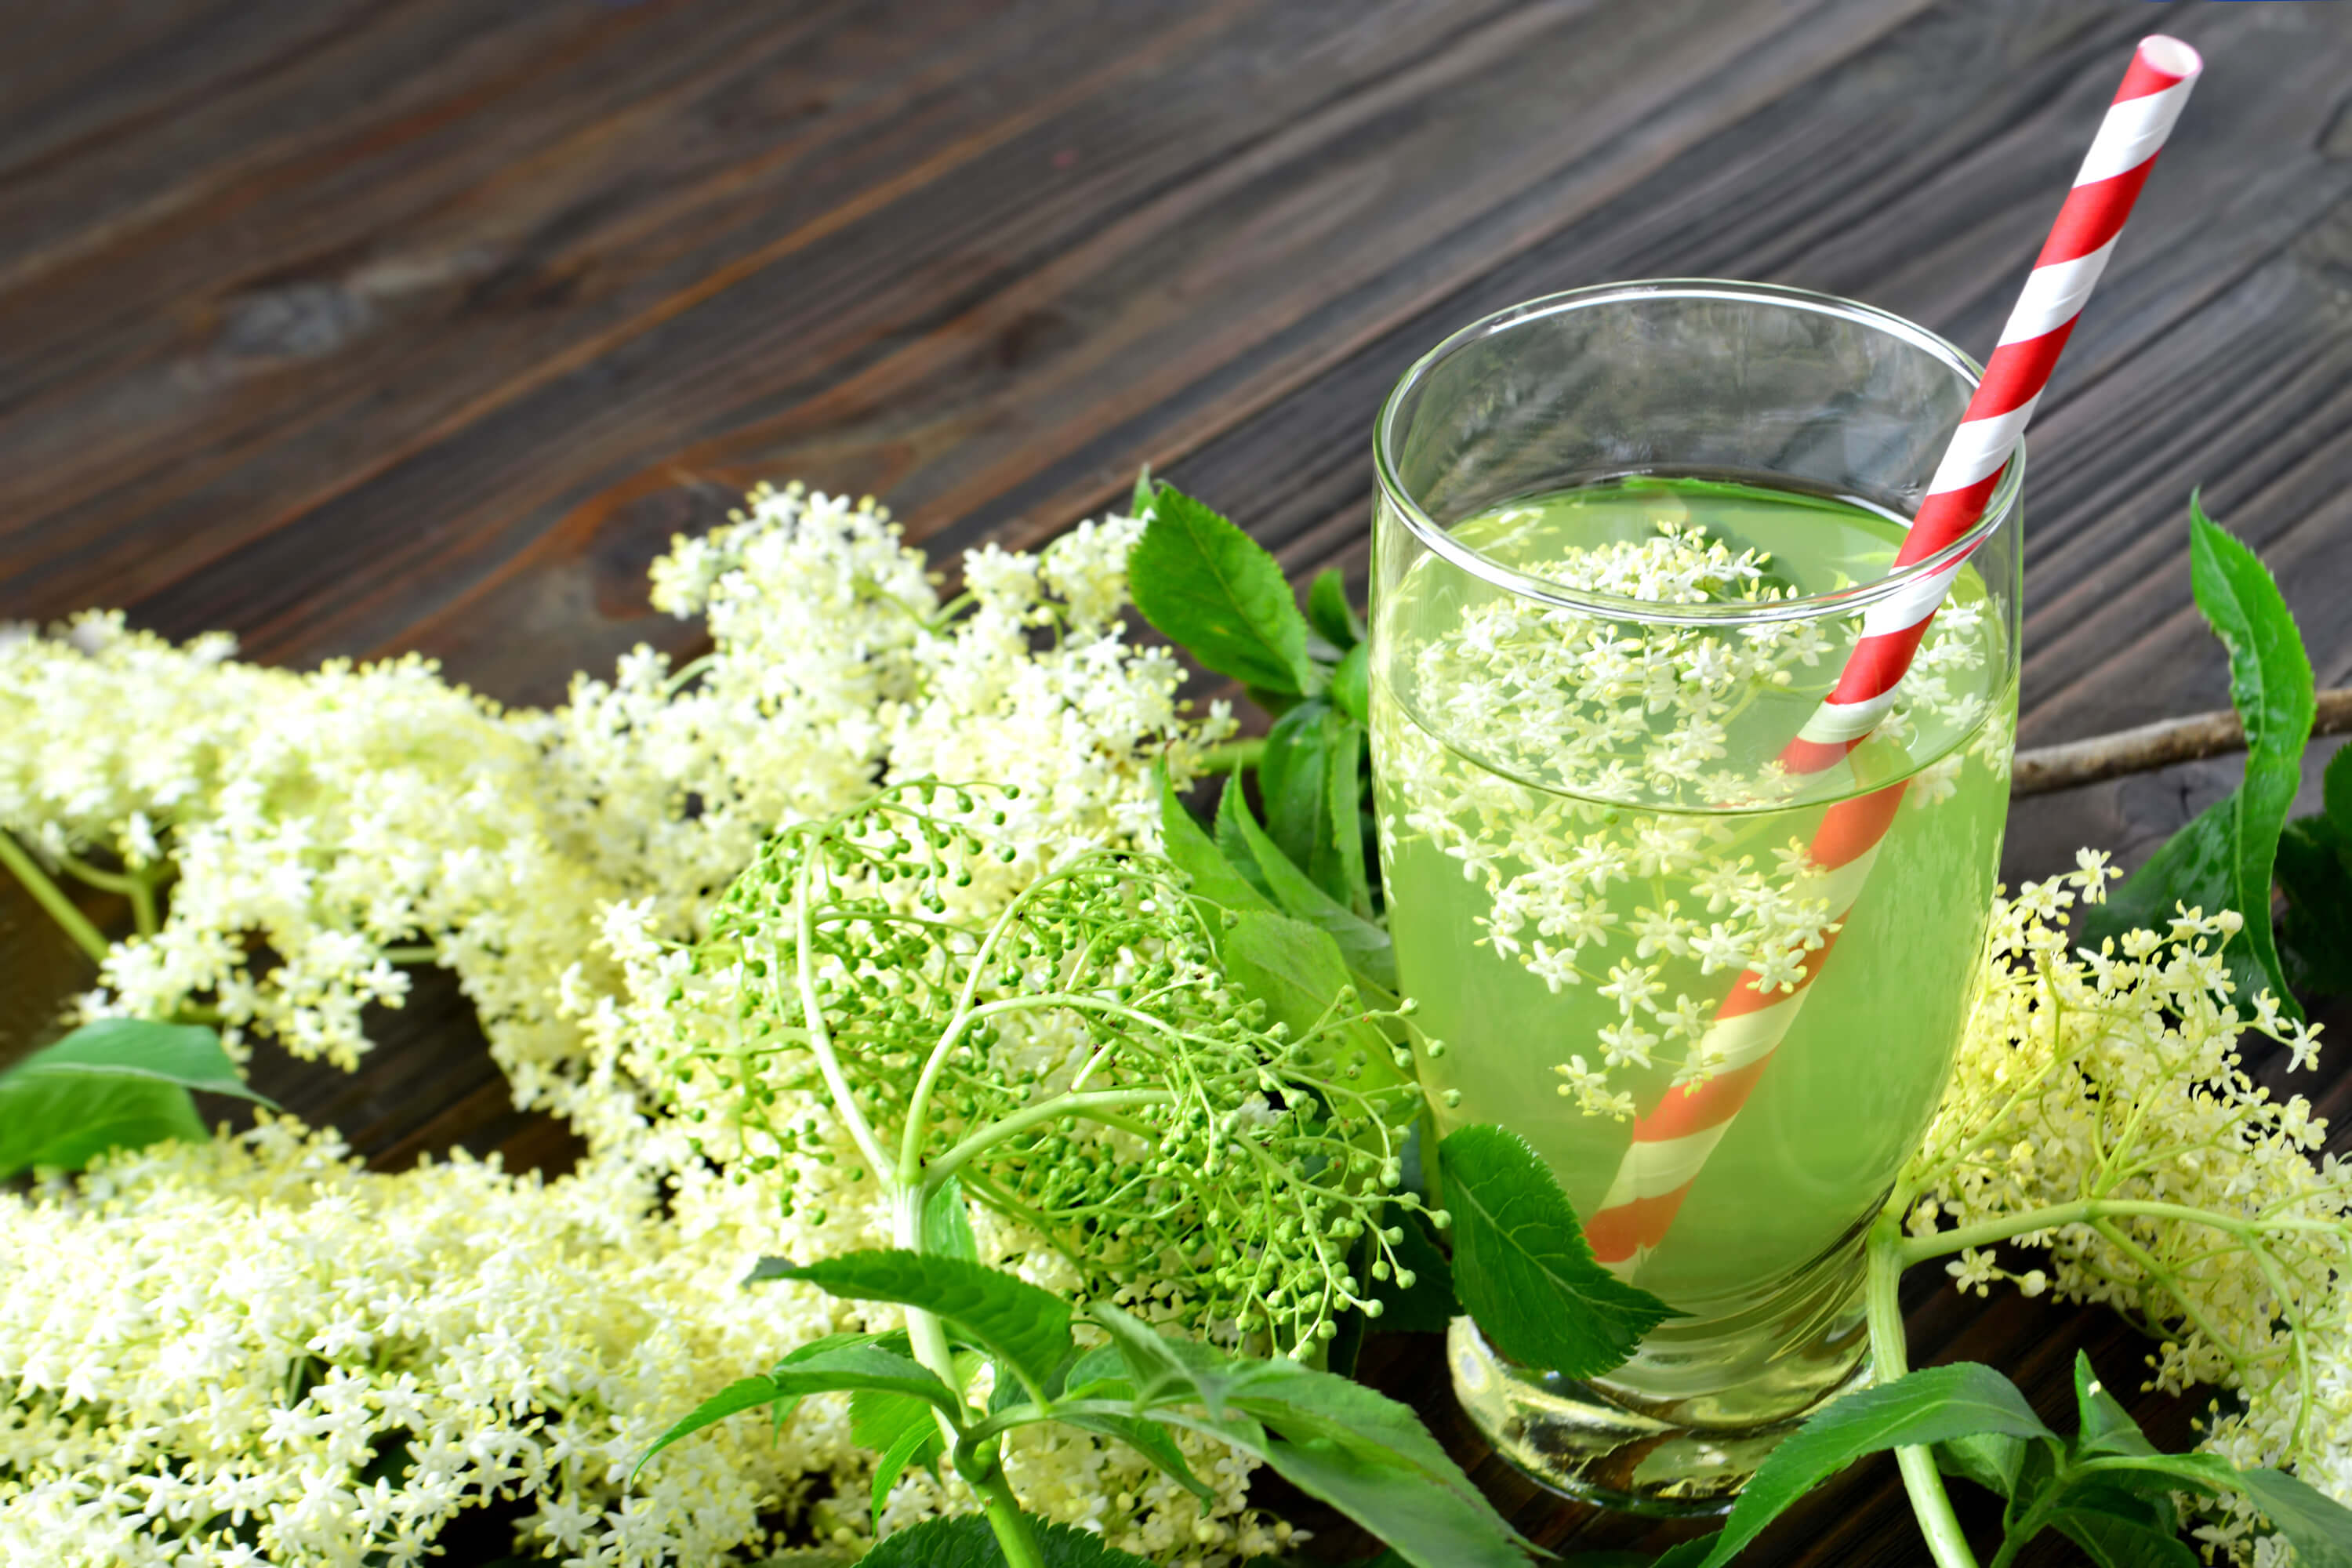 Using Elderflower in Your Food and Drinks